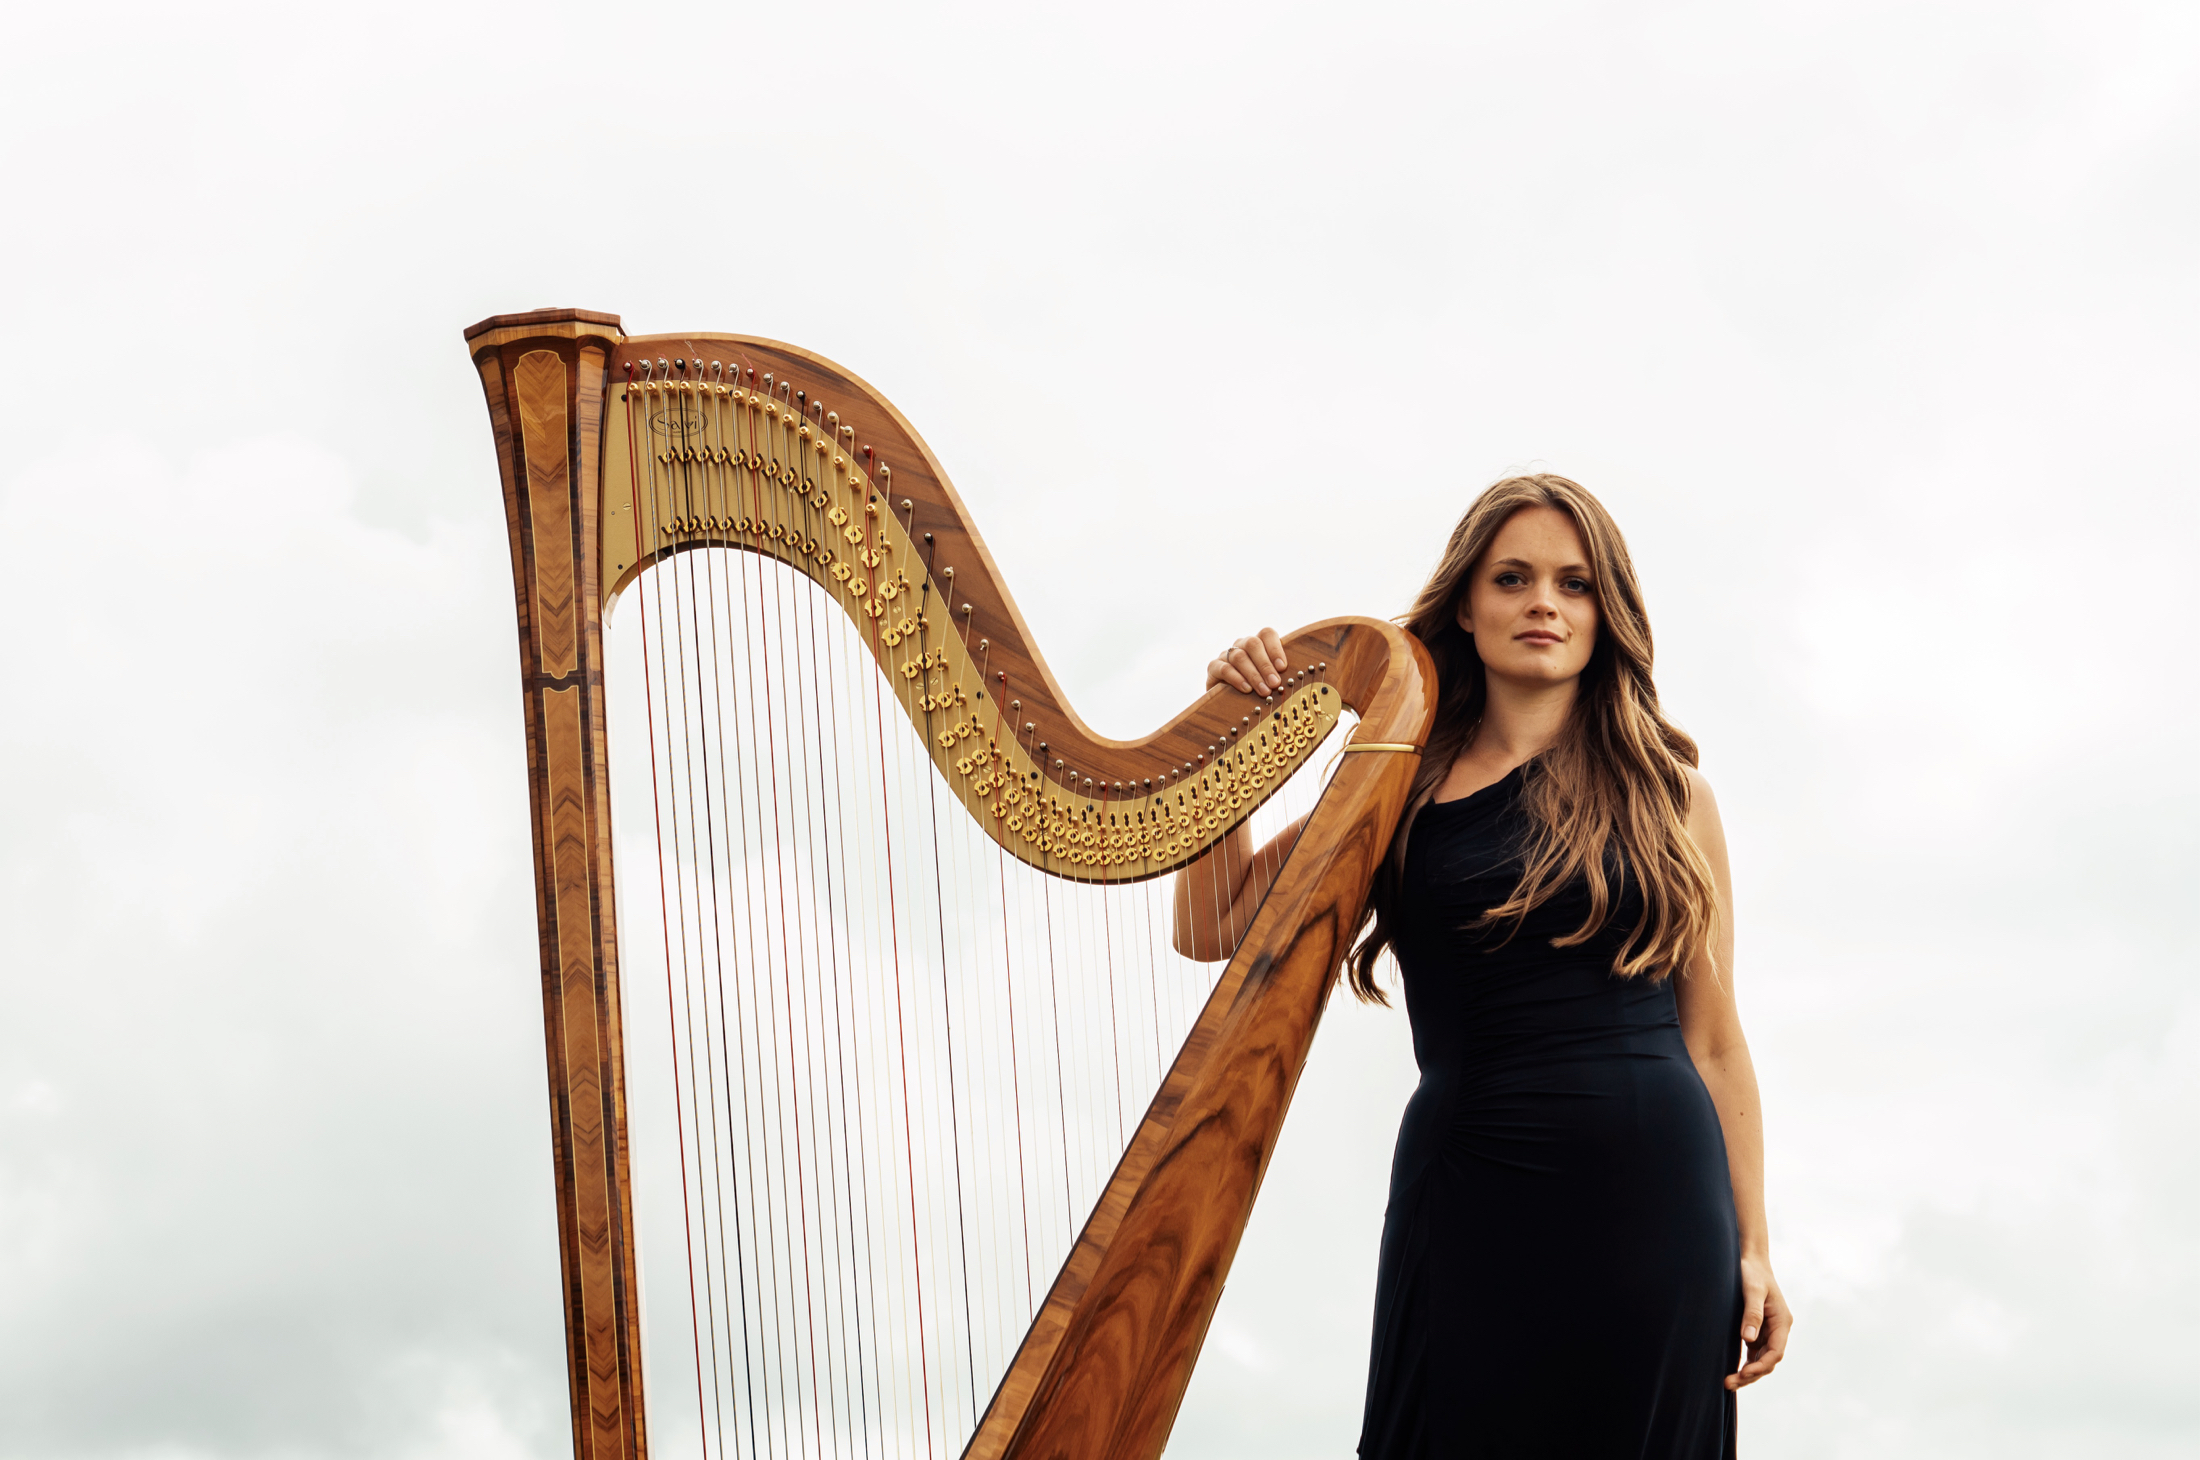 Dreamy photography by Jack Watkins against the clouds for award-winning classical musician and harpist, Lucy Nolan